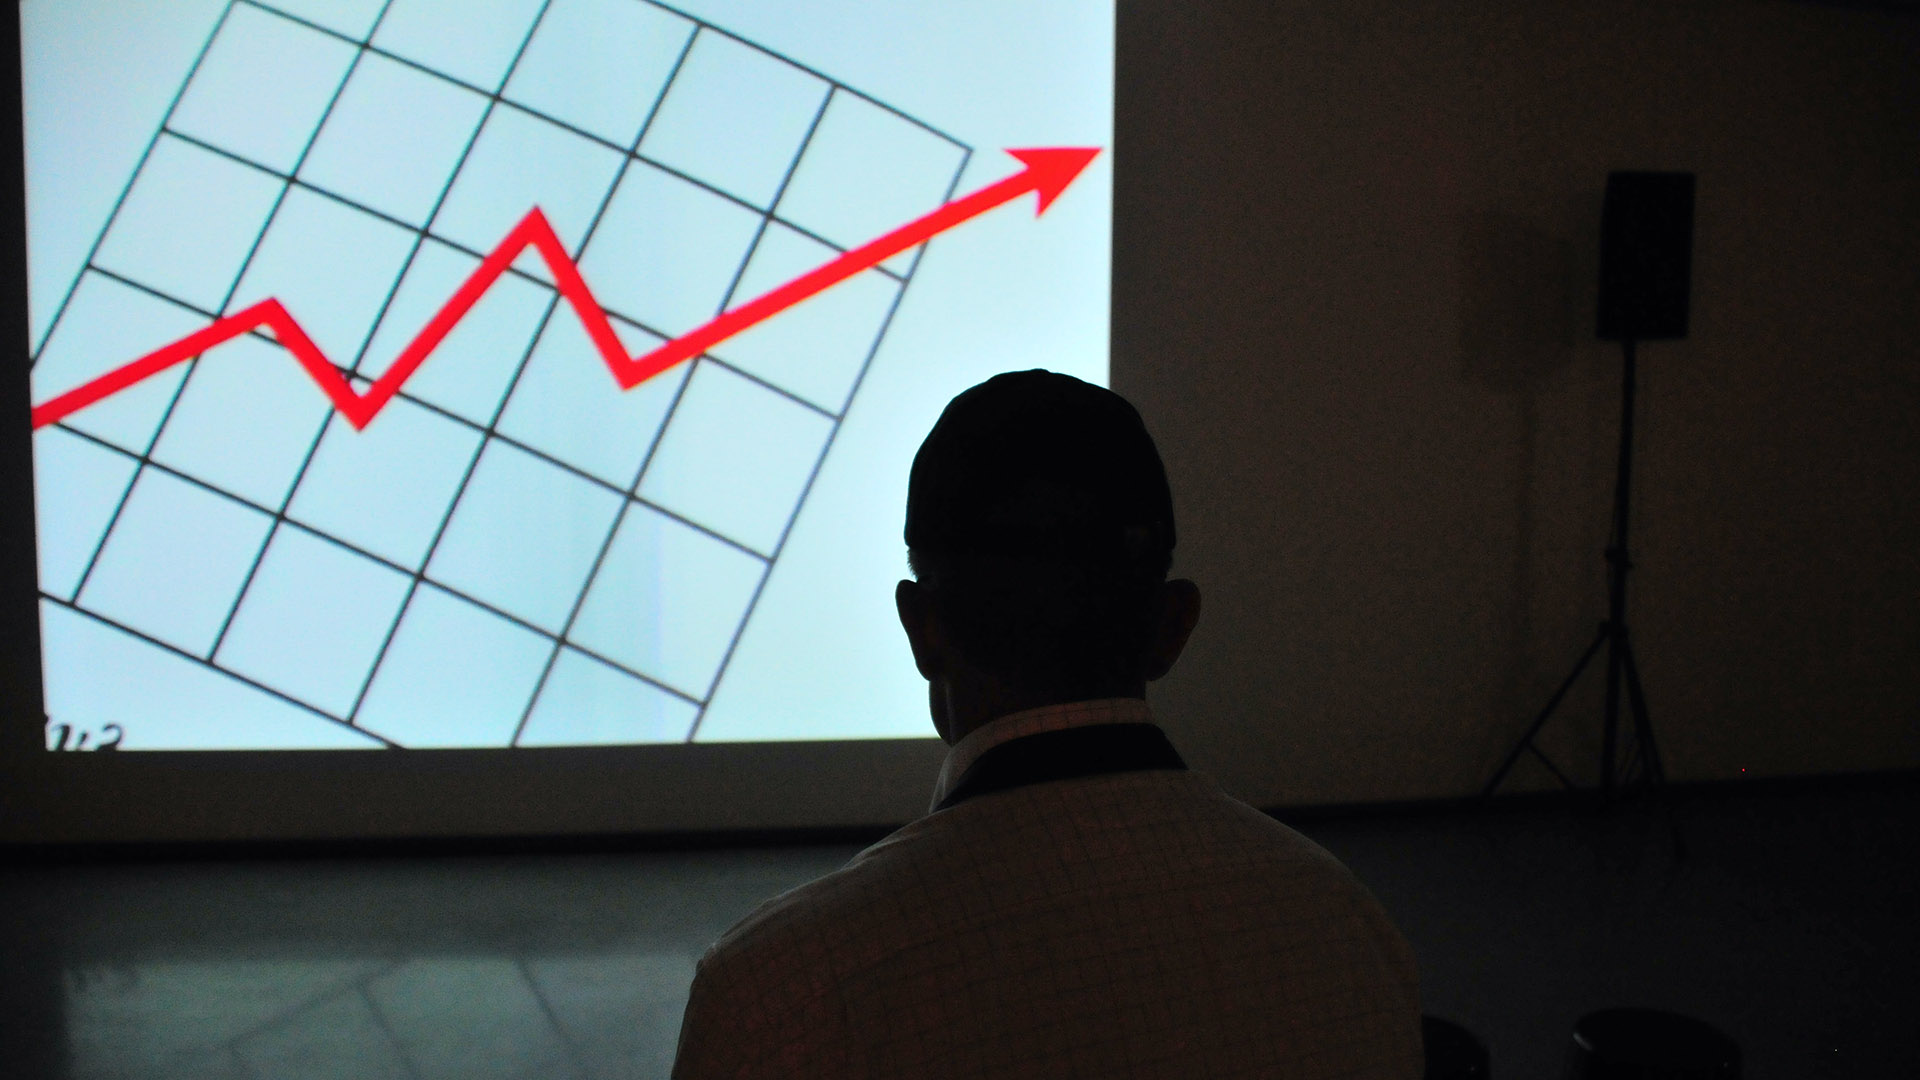 man looking at chart with upwards arrow